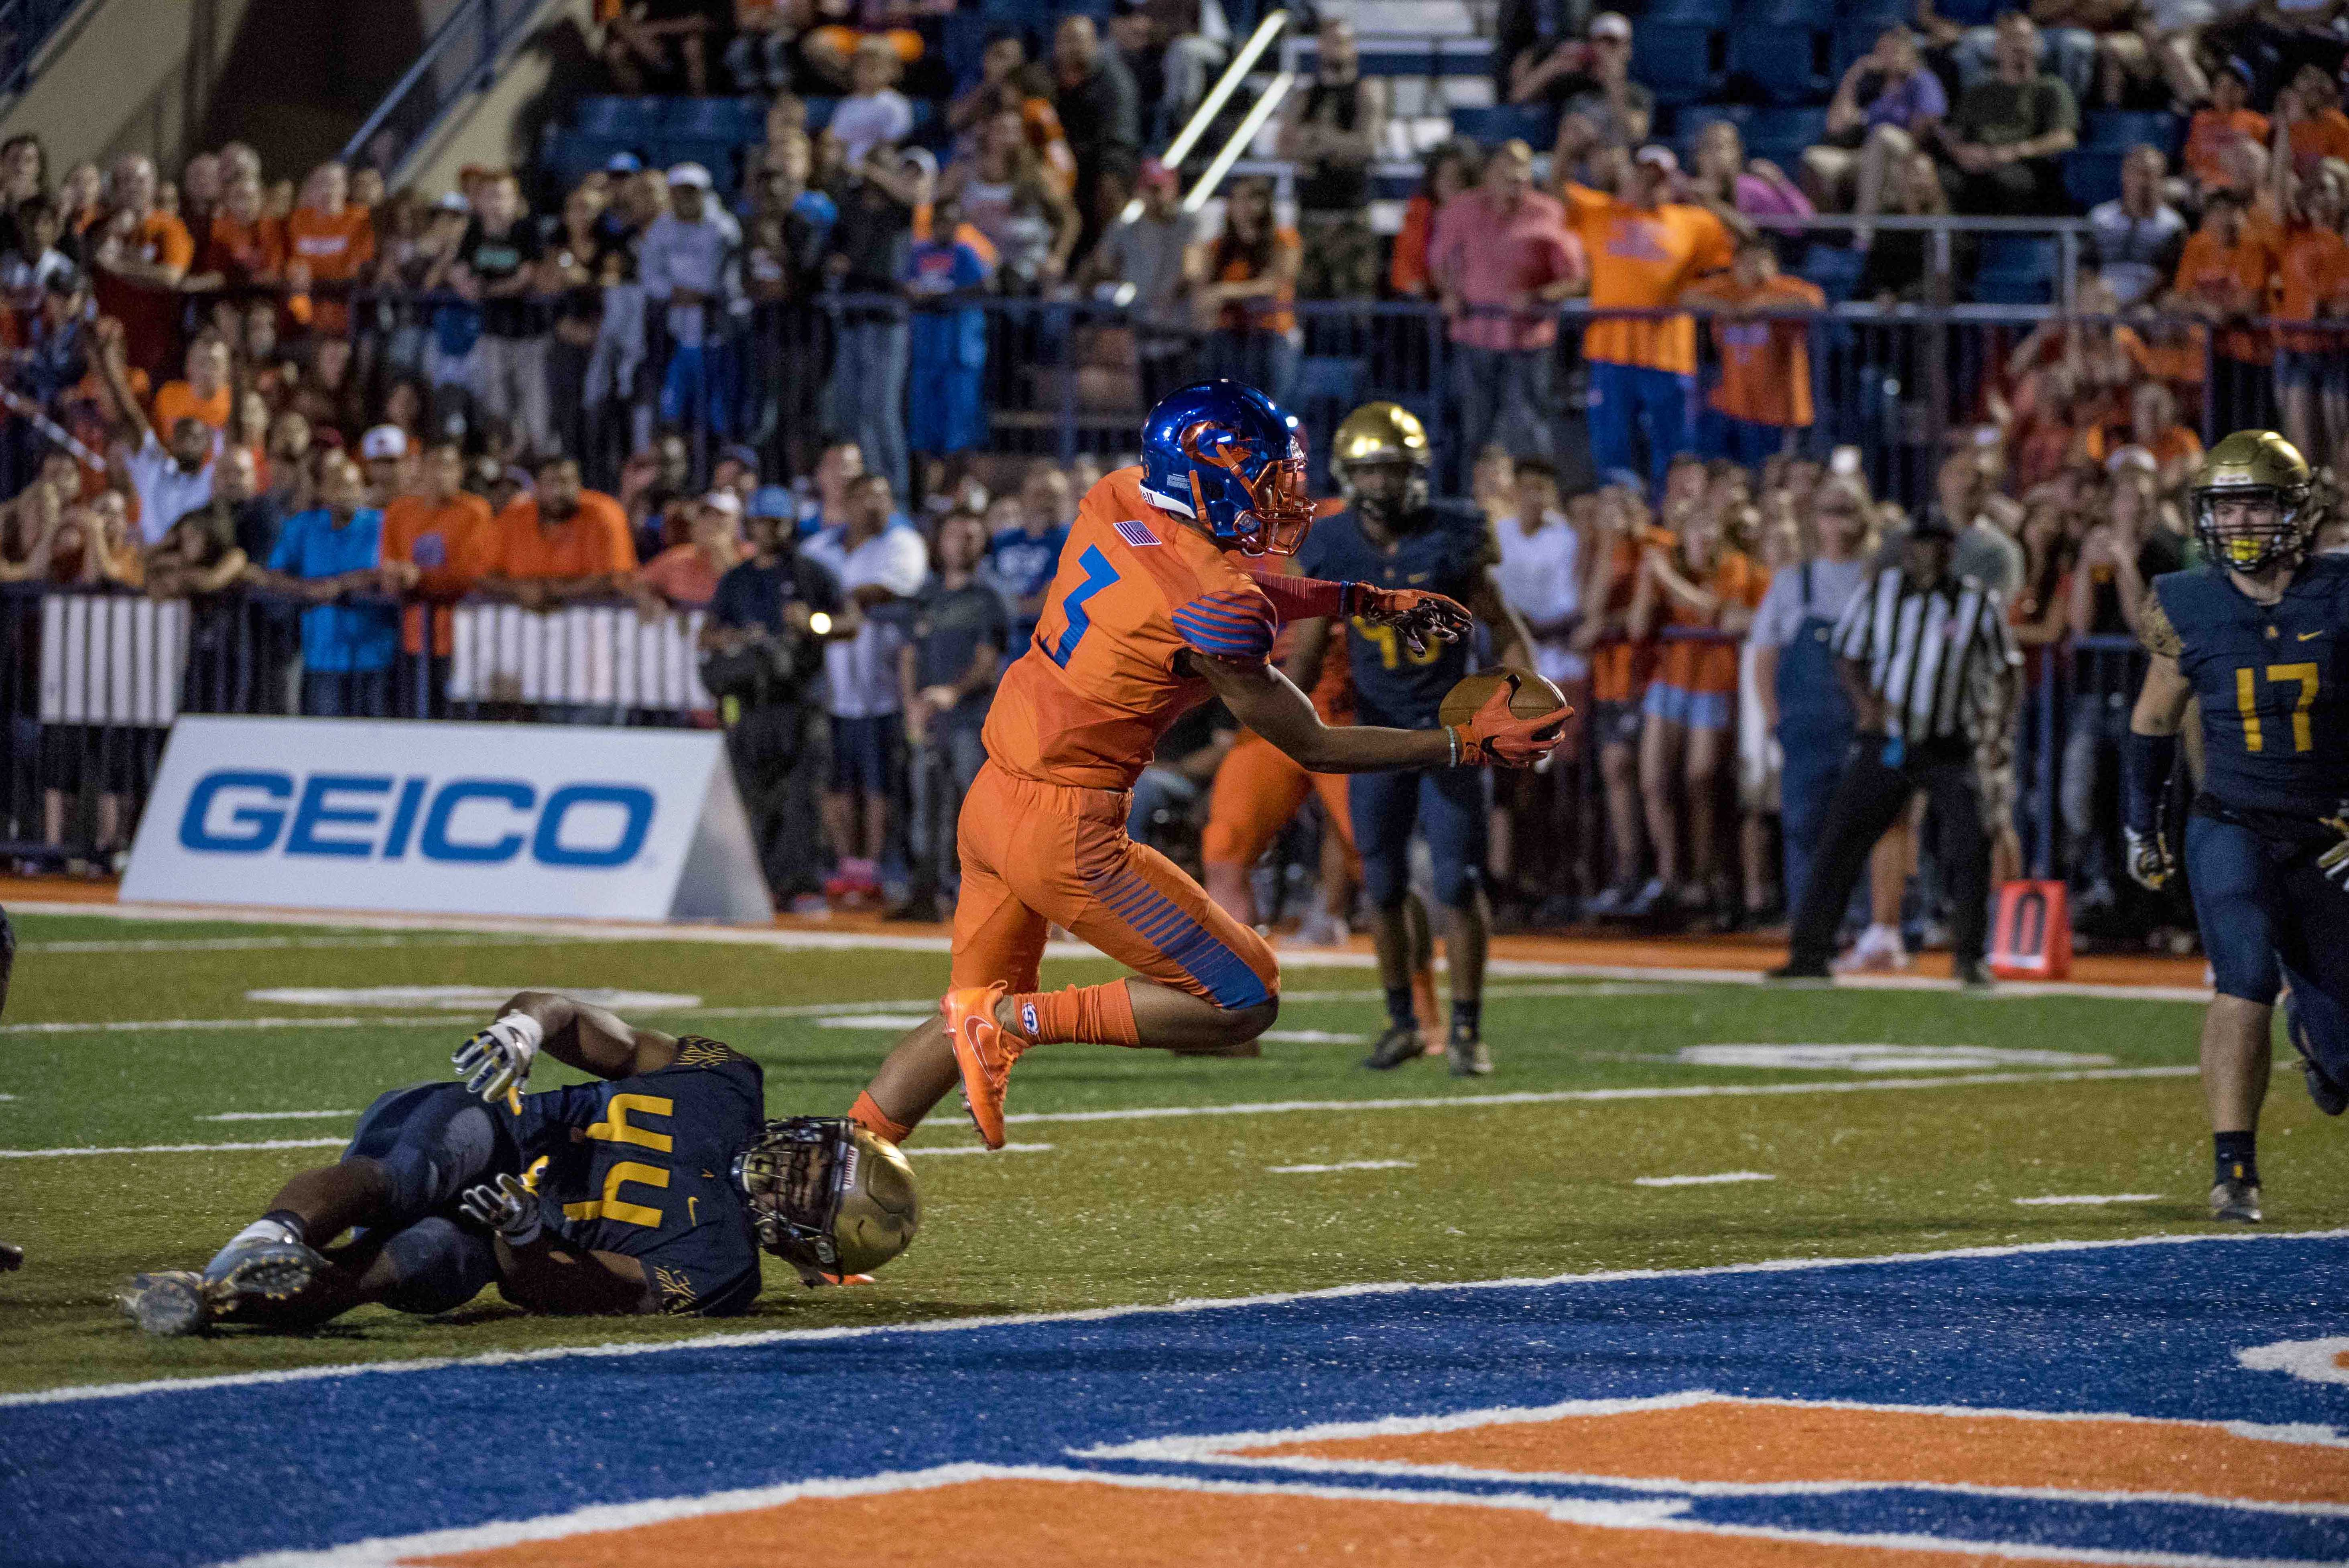 Sep 30, 2016; Las Vegas , NV, USA; Bishop Gorman Gaels player Jalen Nailor (3) runs the ball into the end zone against the St. Thomas Aquinas Raiders during the overtime at Fertitta Field. Bishop Gorman won 25-24 in overtime. Mandatory Credit: Joshua Dahl-USA TODAY Sports ORG XMIT: USATSI-326694 ORIG FILE ID: 20160930_gma_db9_340.jpg